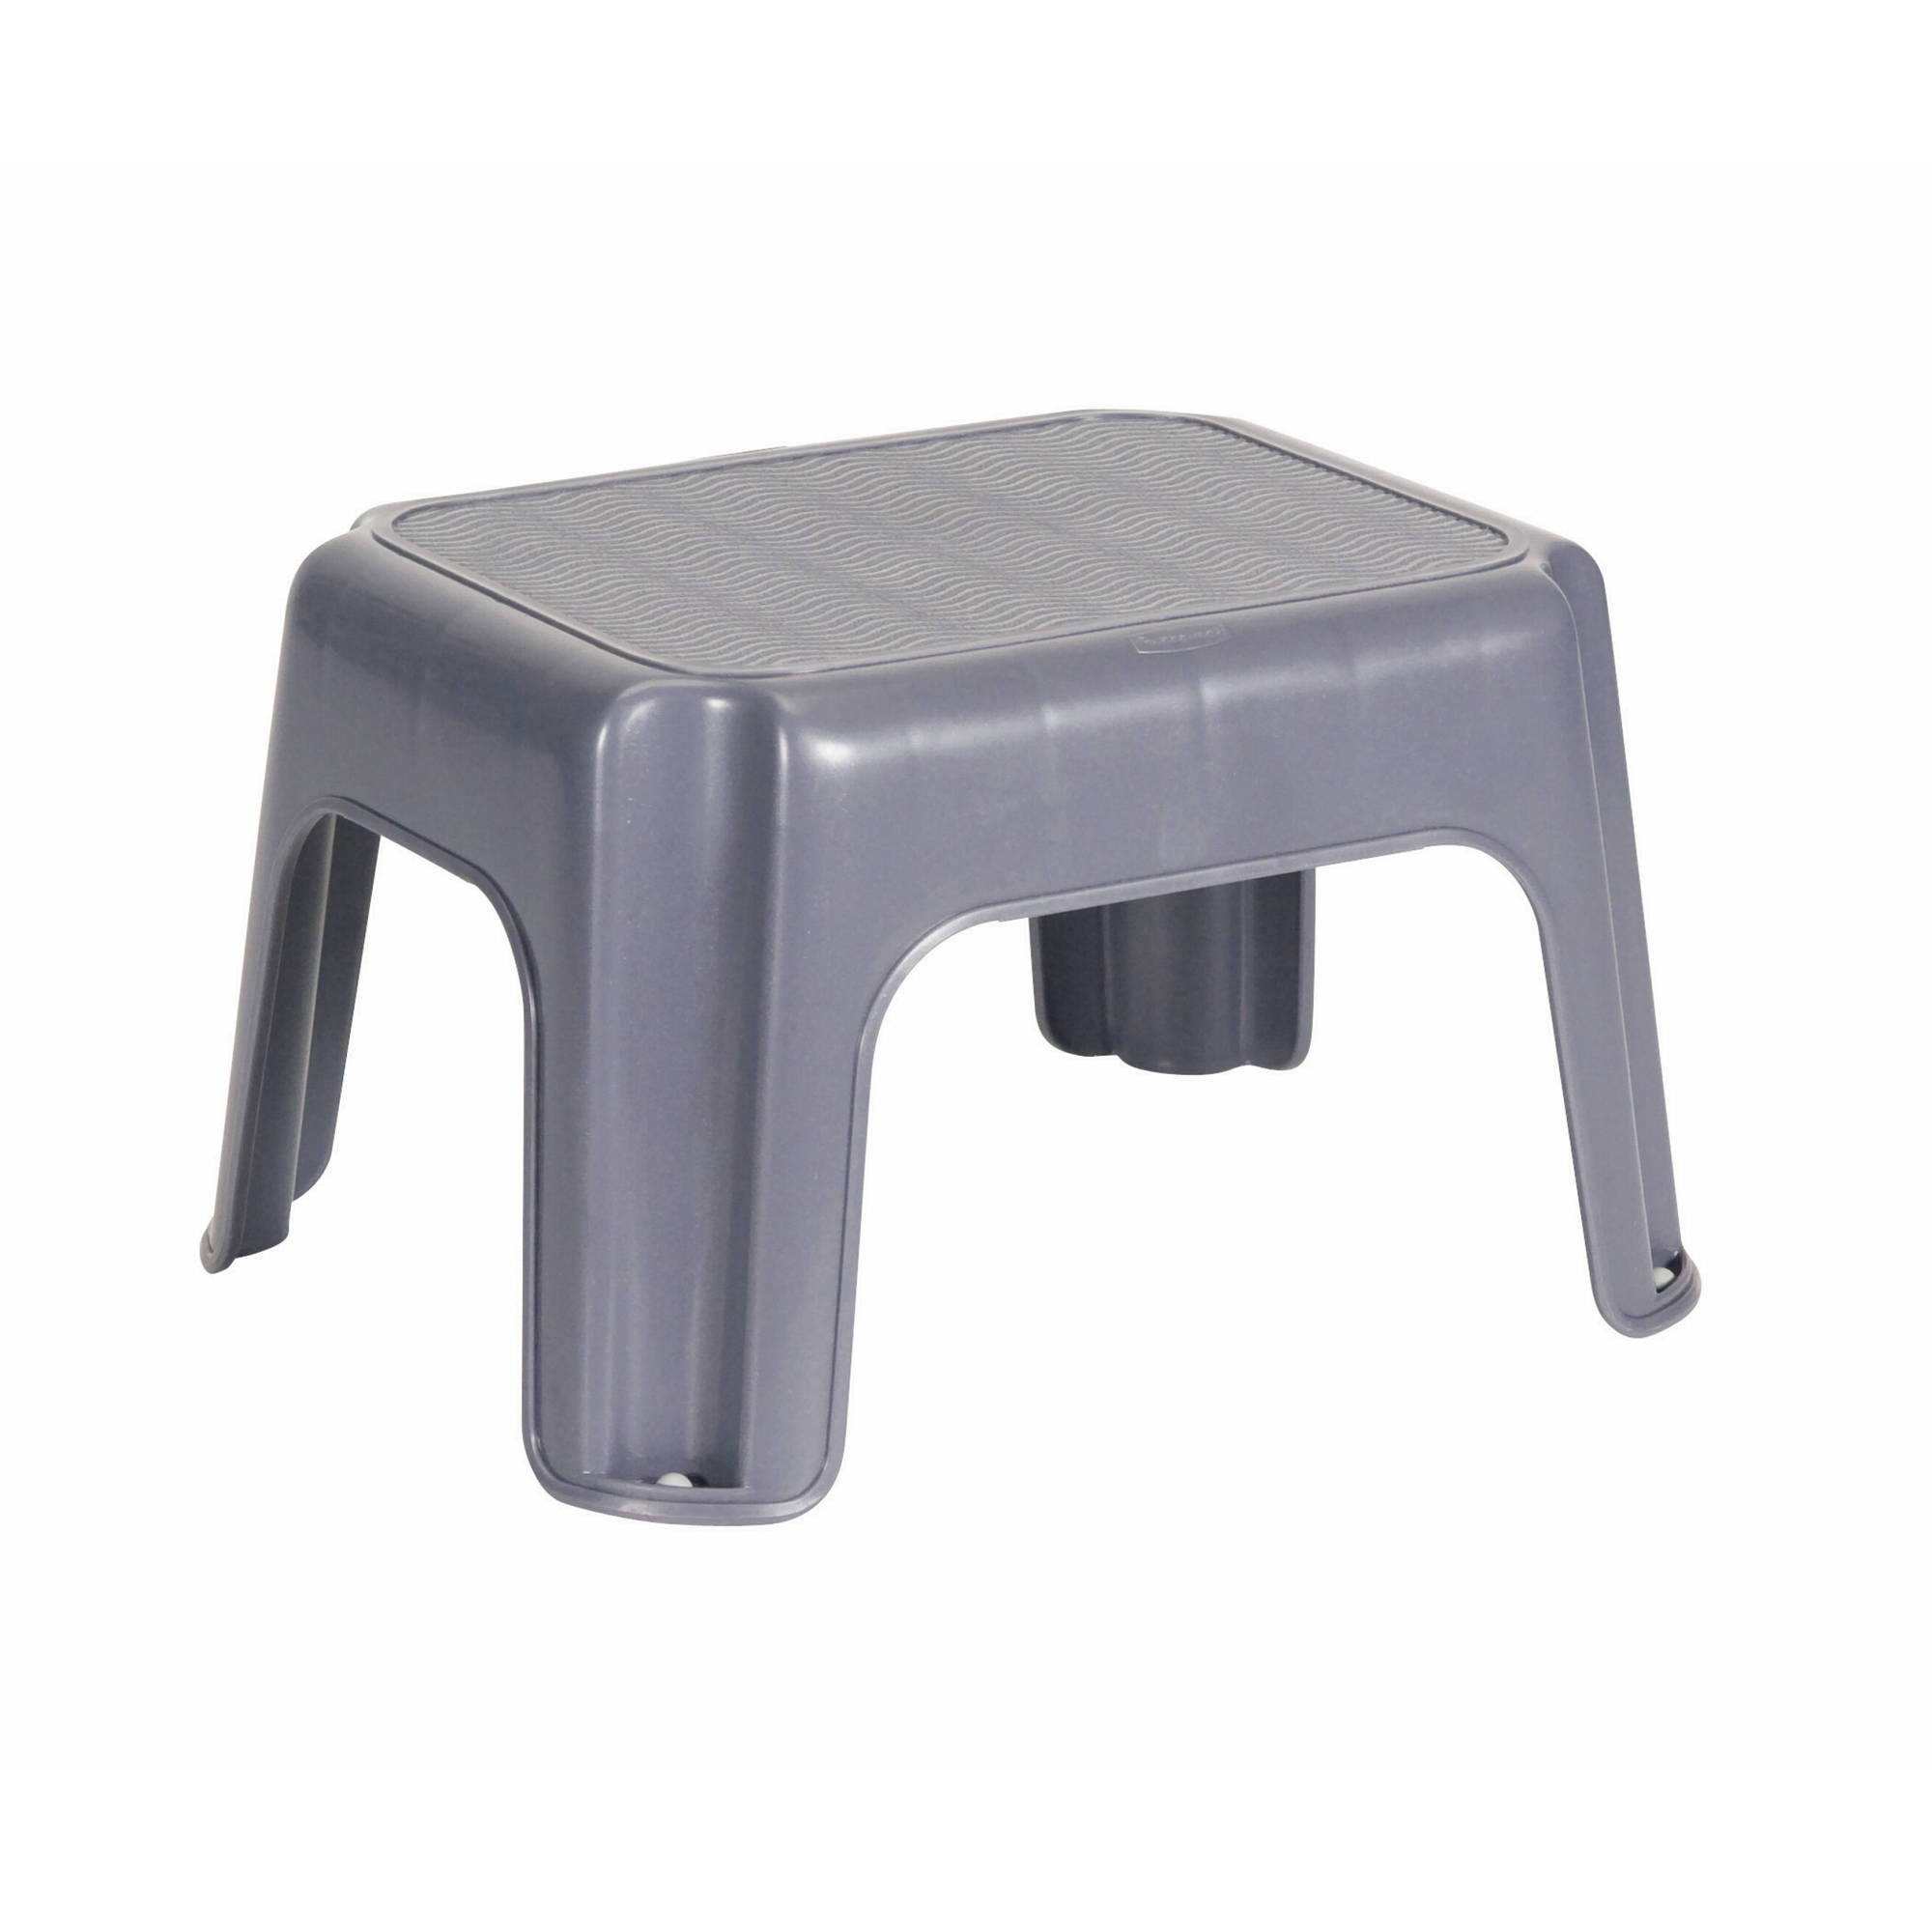 Rubbermaid Small Step Stool, Black - Walmart.com